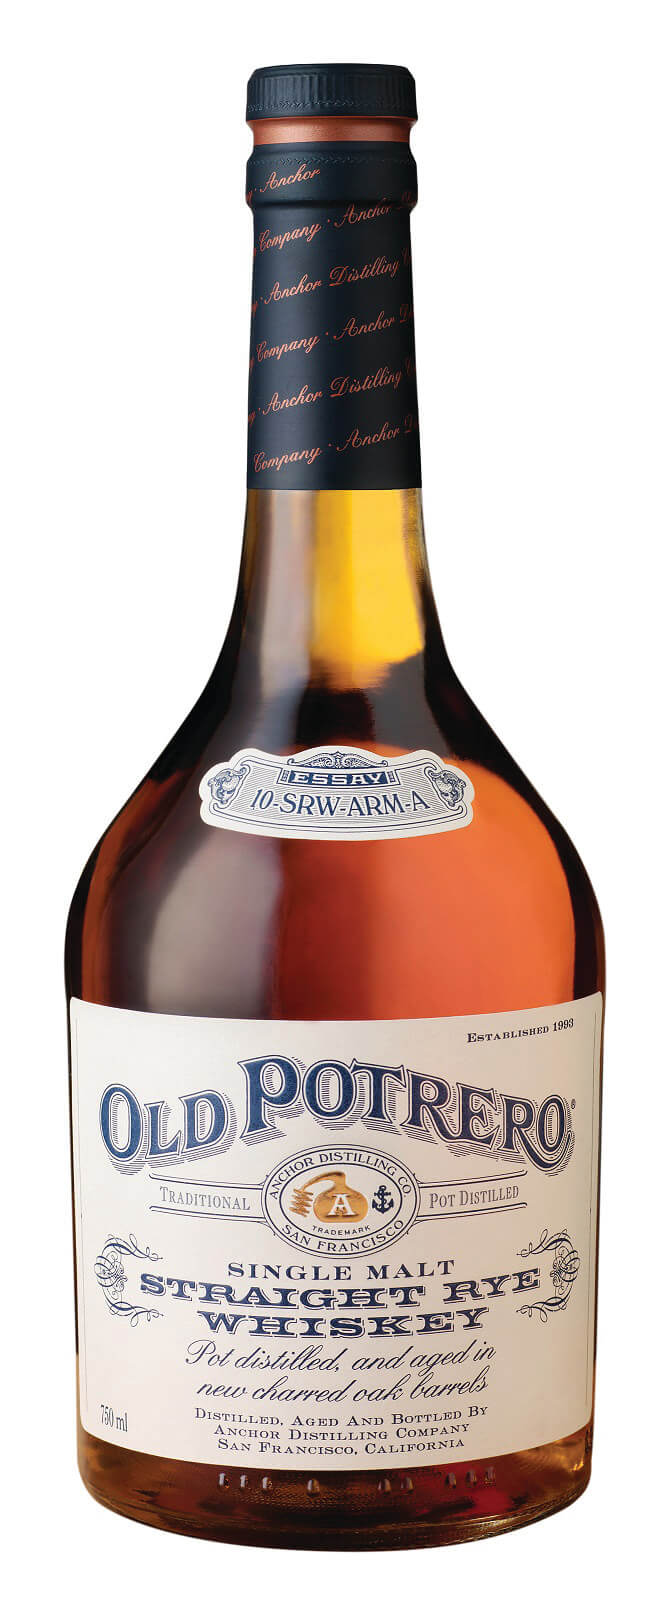 Old Potrero Single Malt Straight Rye Whiskey bottle - Anchor Distilling Company